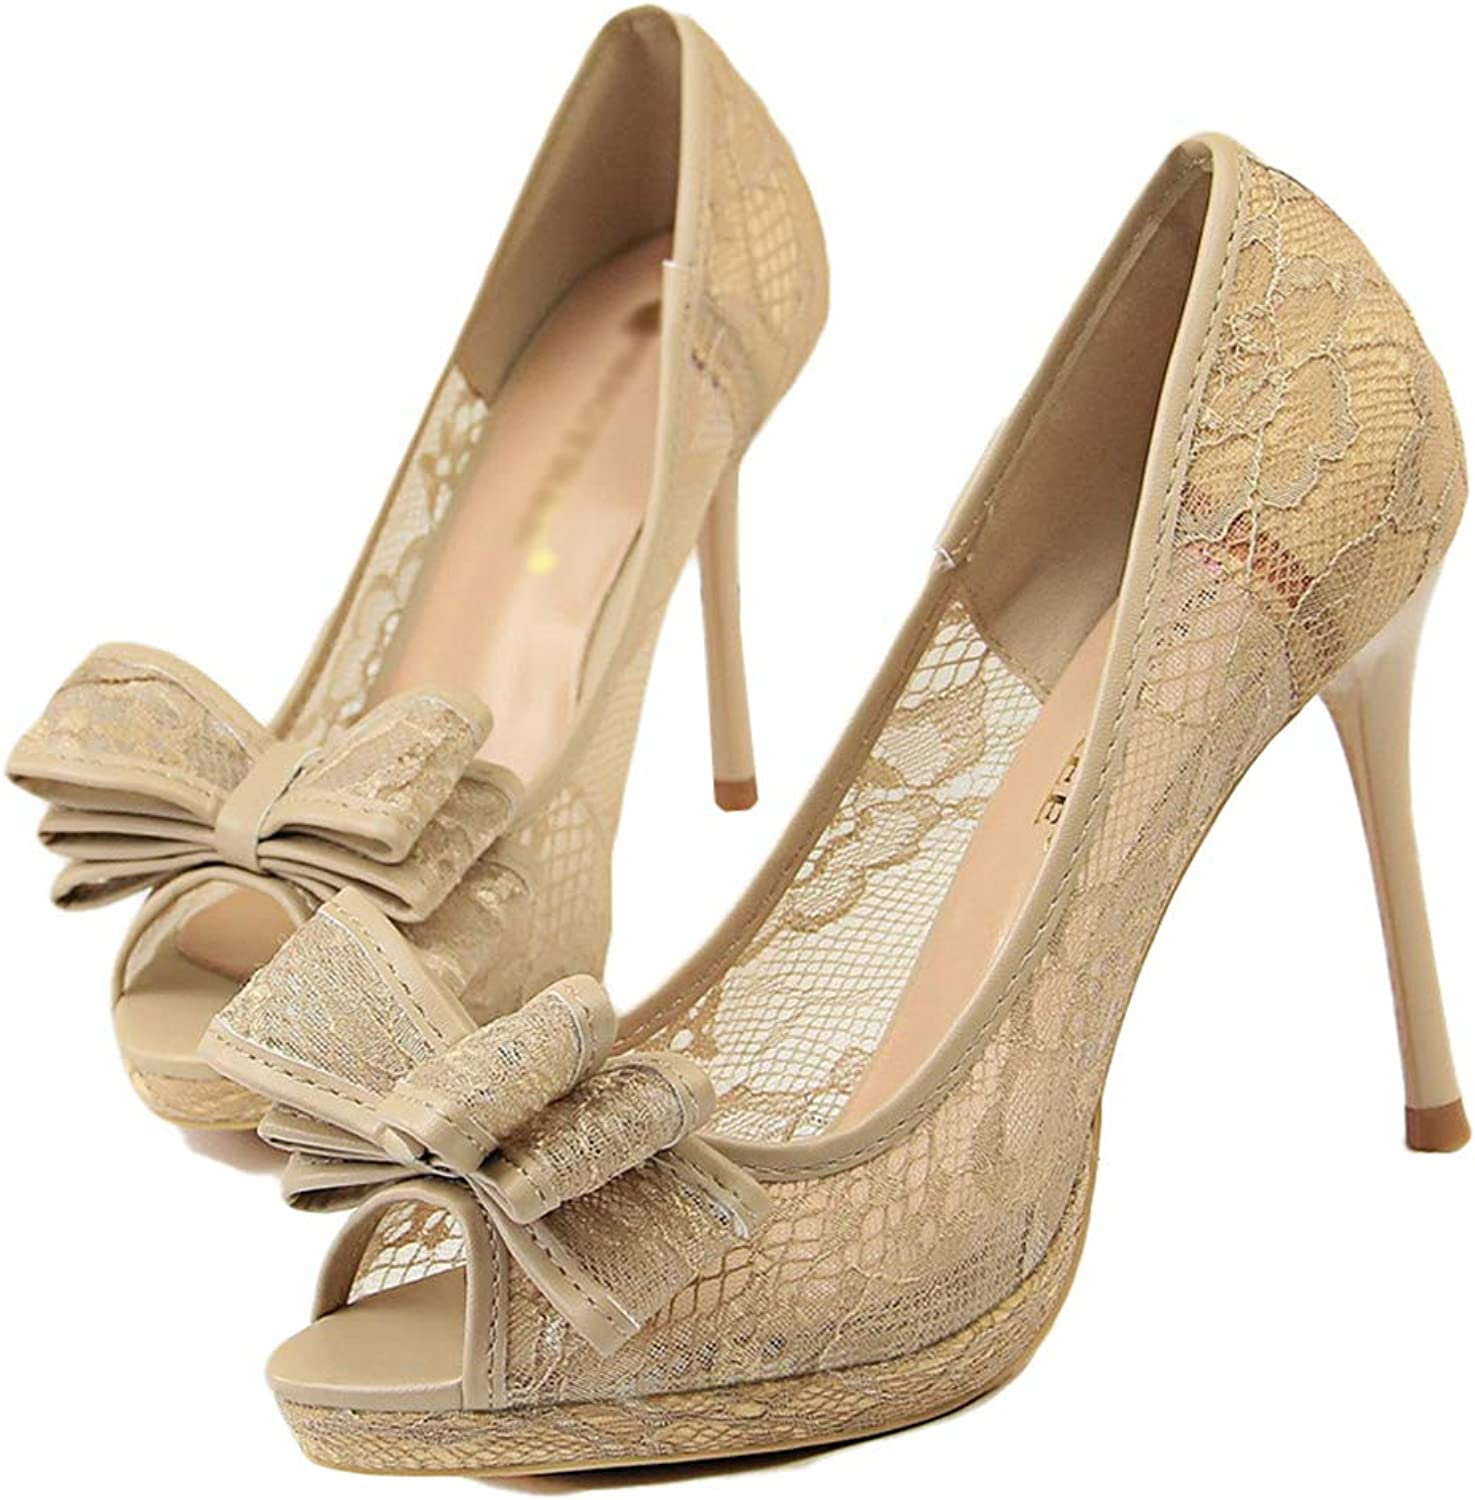 Drew Toby Women Pumps Sexy Cut-Outs Mesh Peep Toe Flower Lace Fashion Shallow High Heels